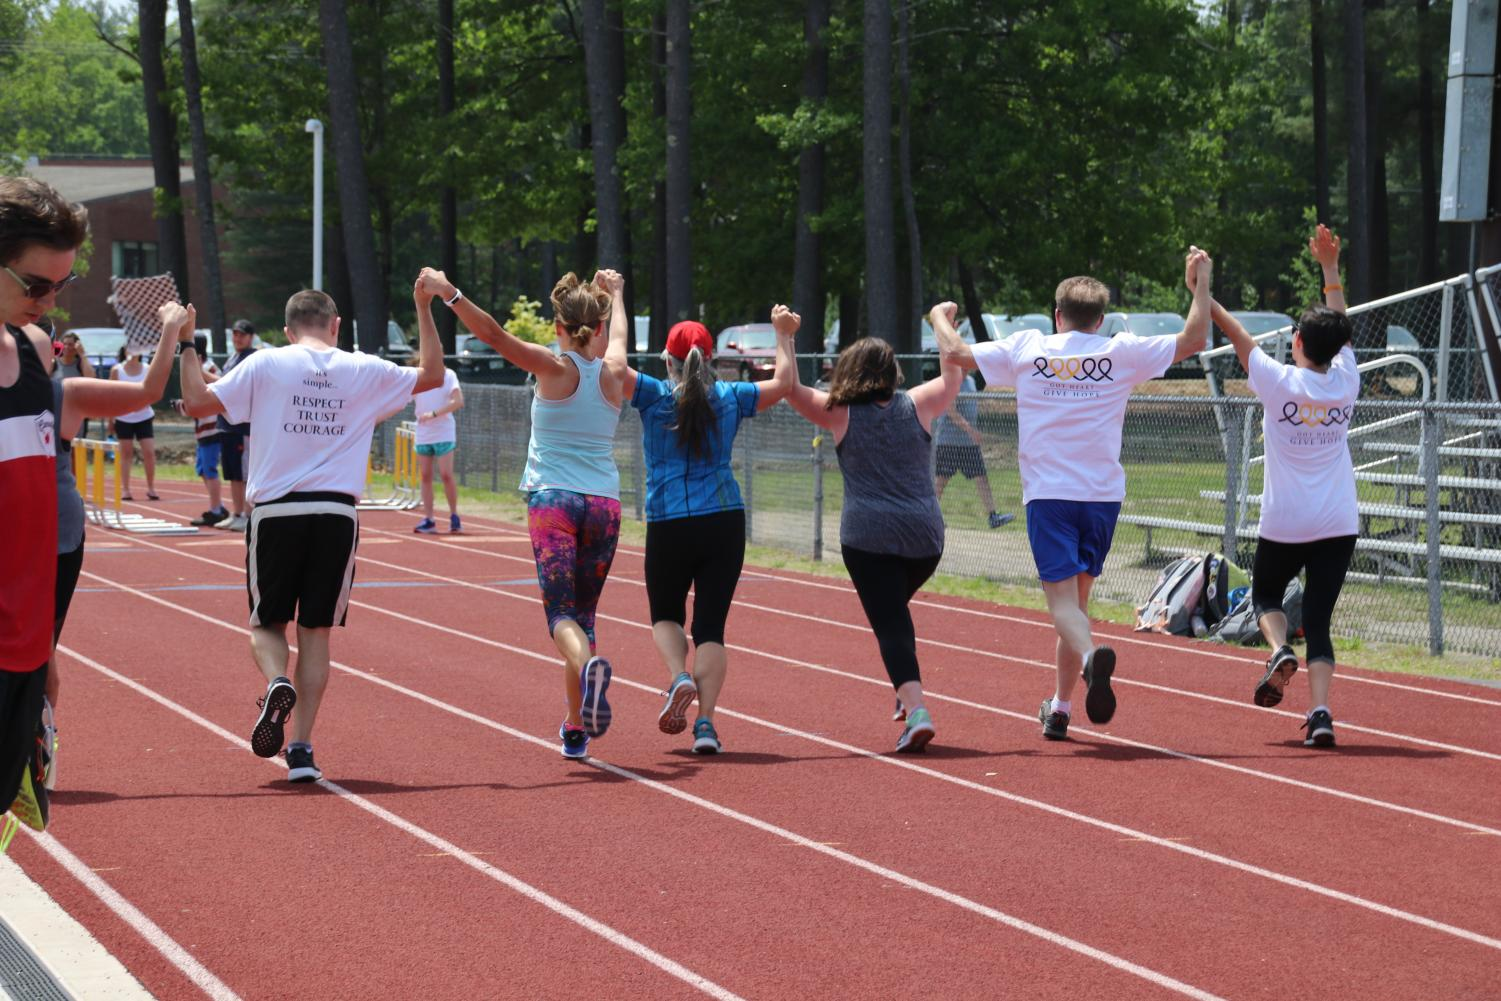 Some+of+the+teachers+that+ran+completed+the+5K+together.